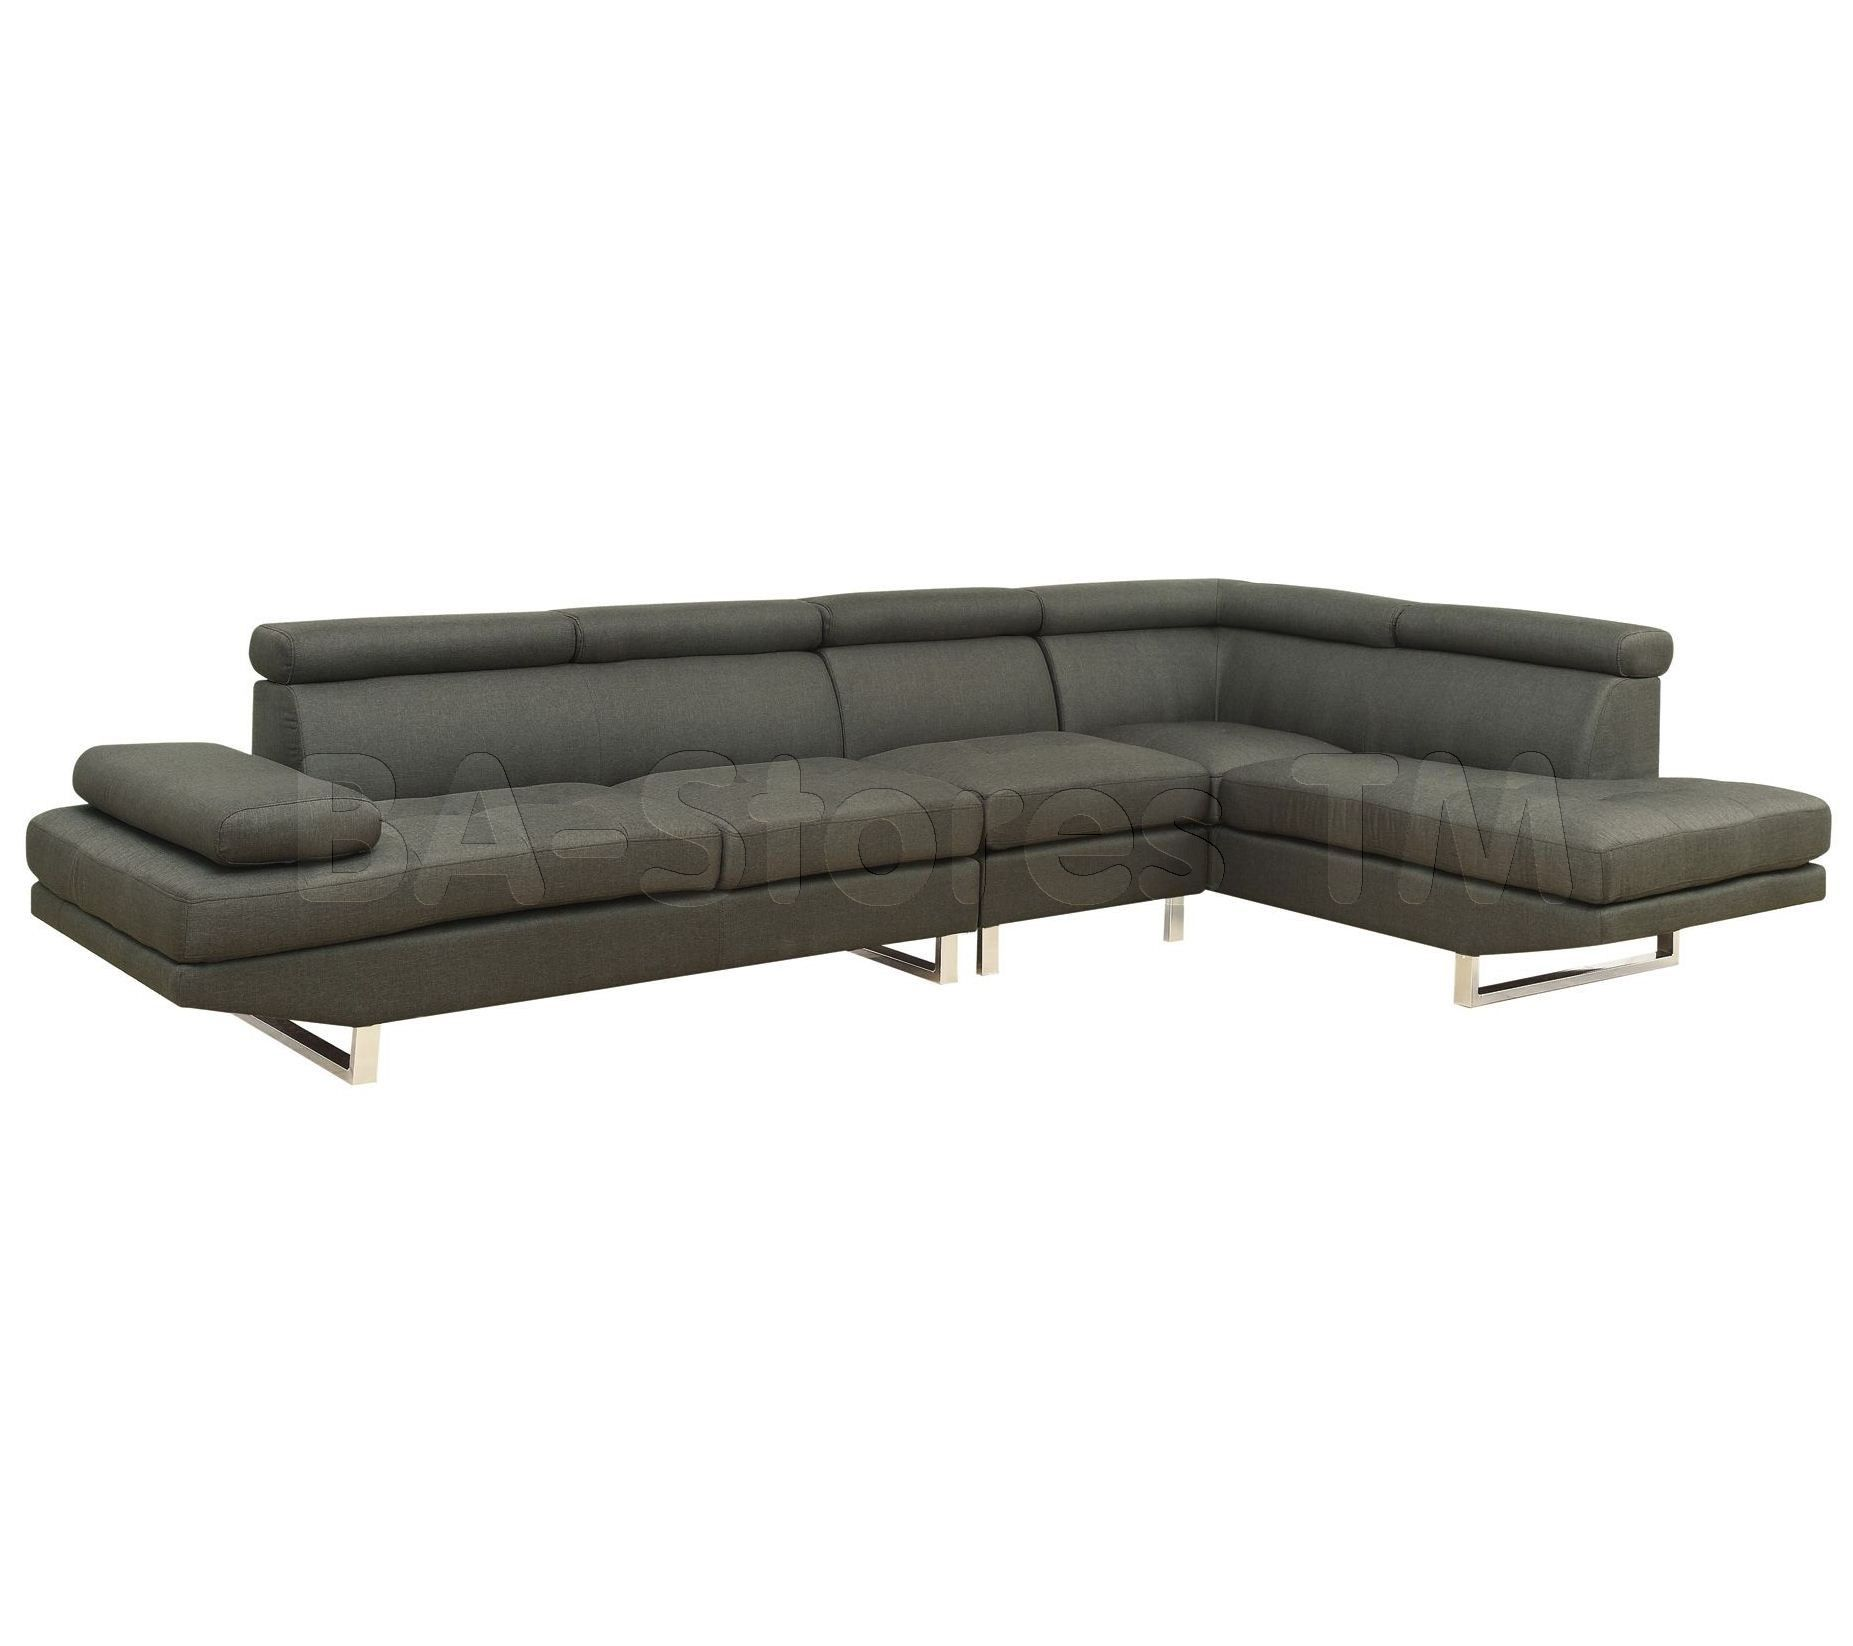 Piper Grey Fabric Sectional with Adjustable Headrests